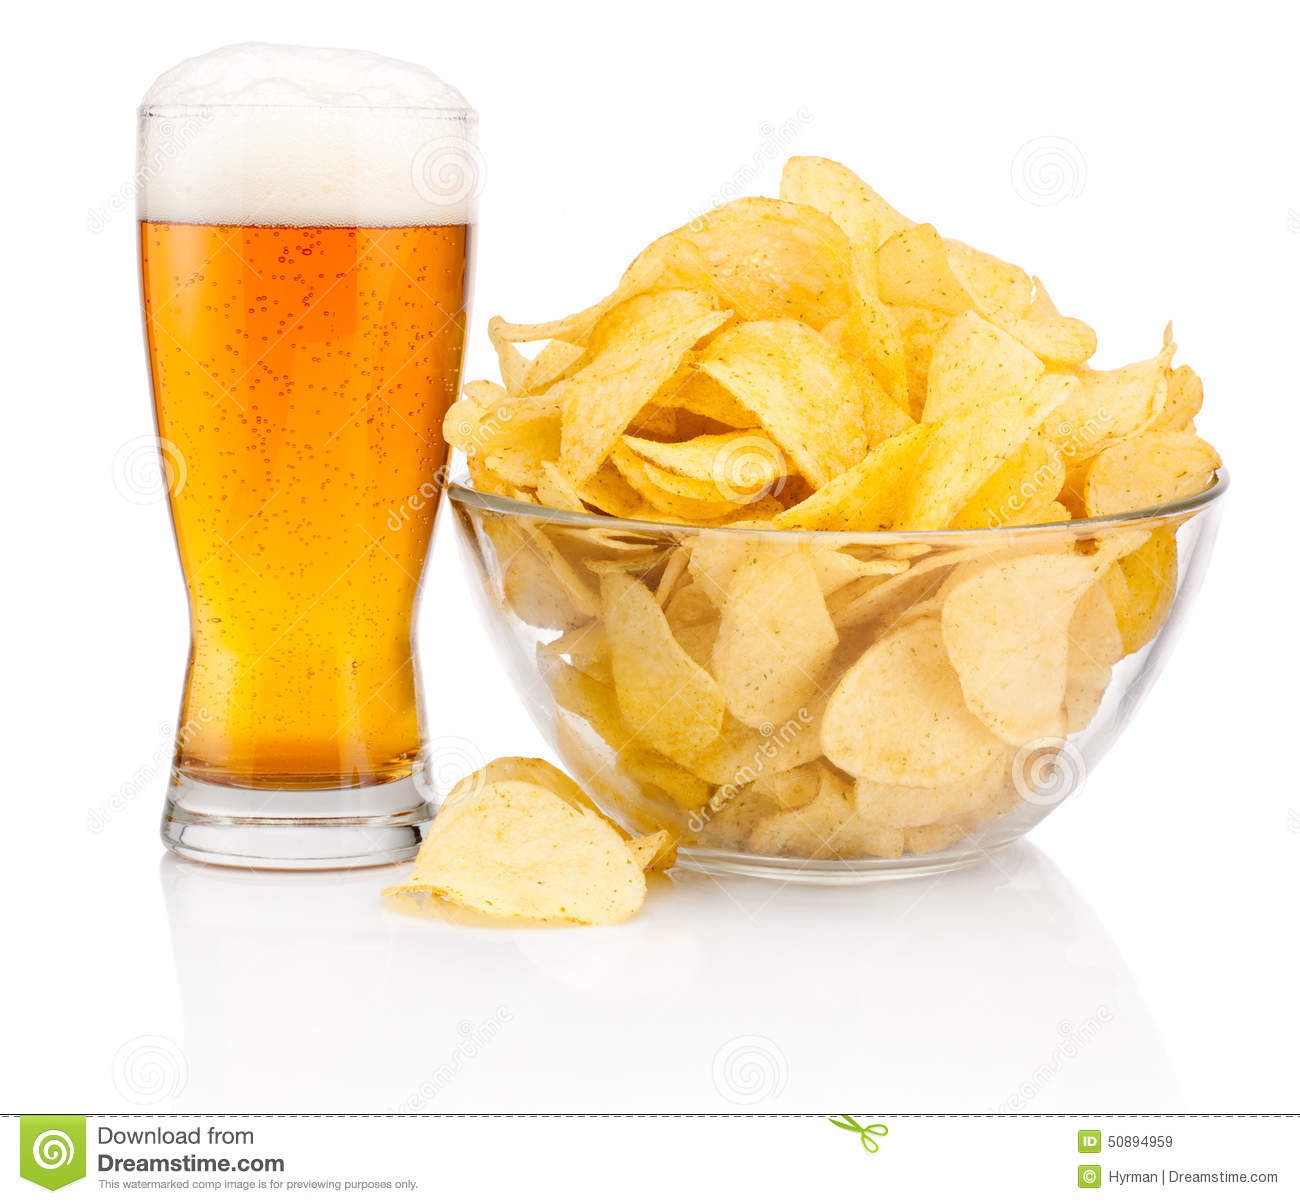 https://thumbs.dreamstime.com/z/glass-beer-potato-chips-glass-bowl-isolated-white-background-50894959.jpg